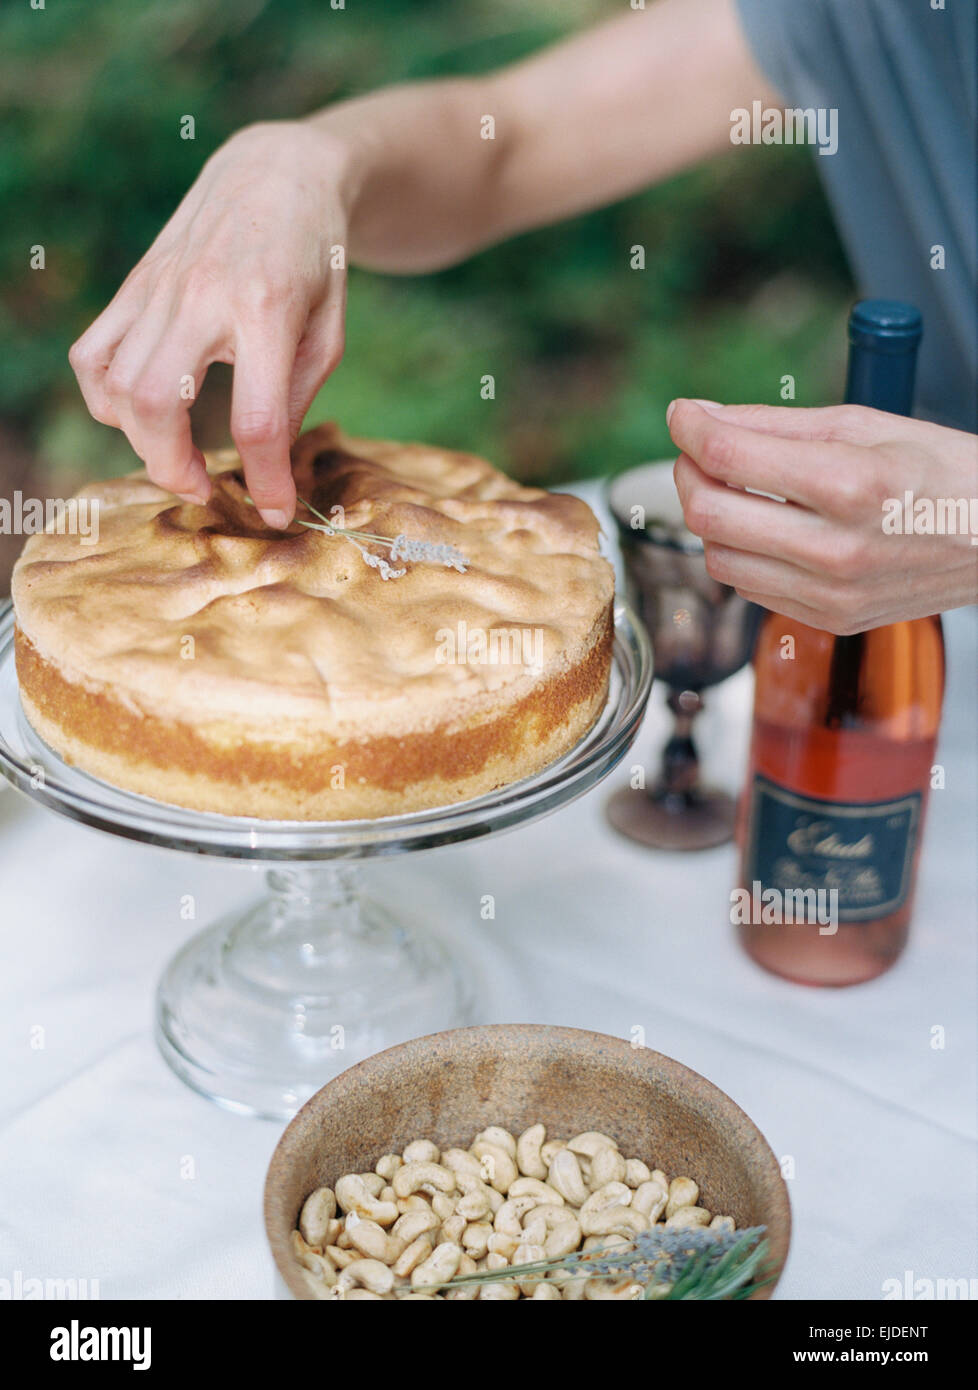 A woman decorating a cake on a glass stand. A dish of nuts and a bottle of rose wine. - Stock Image